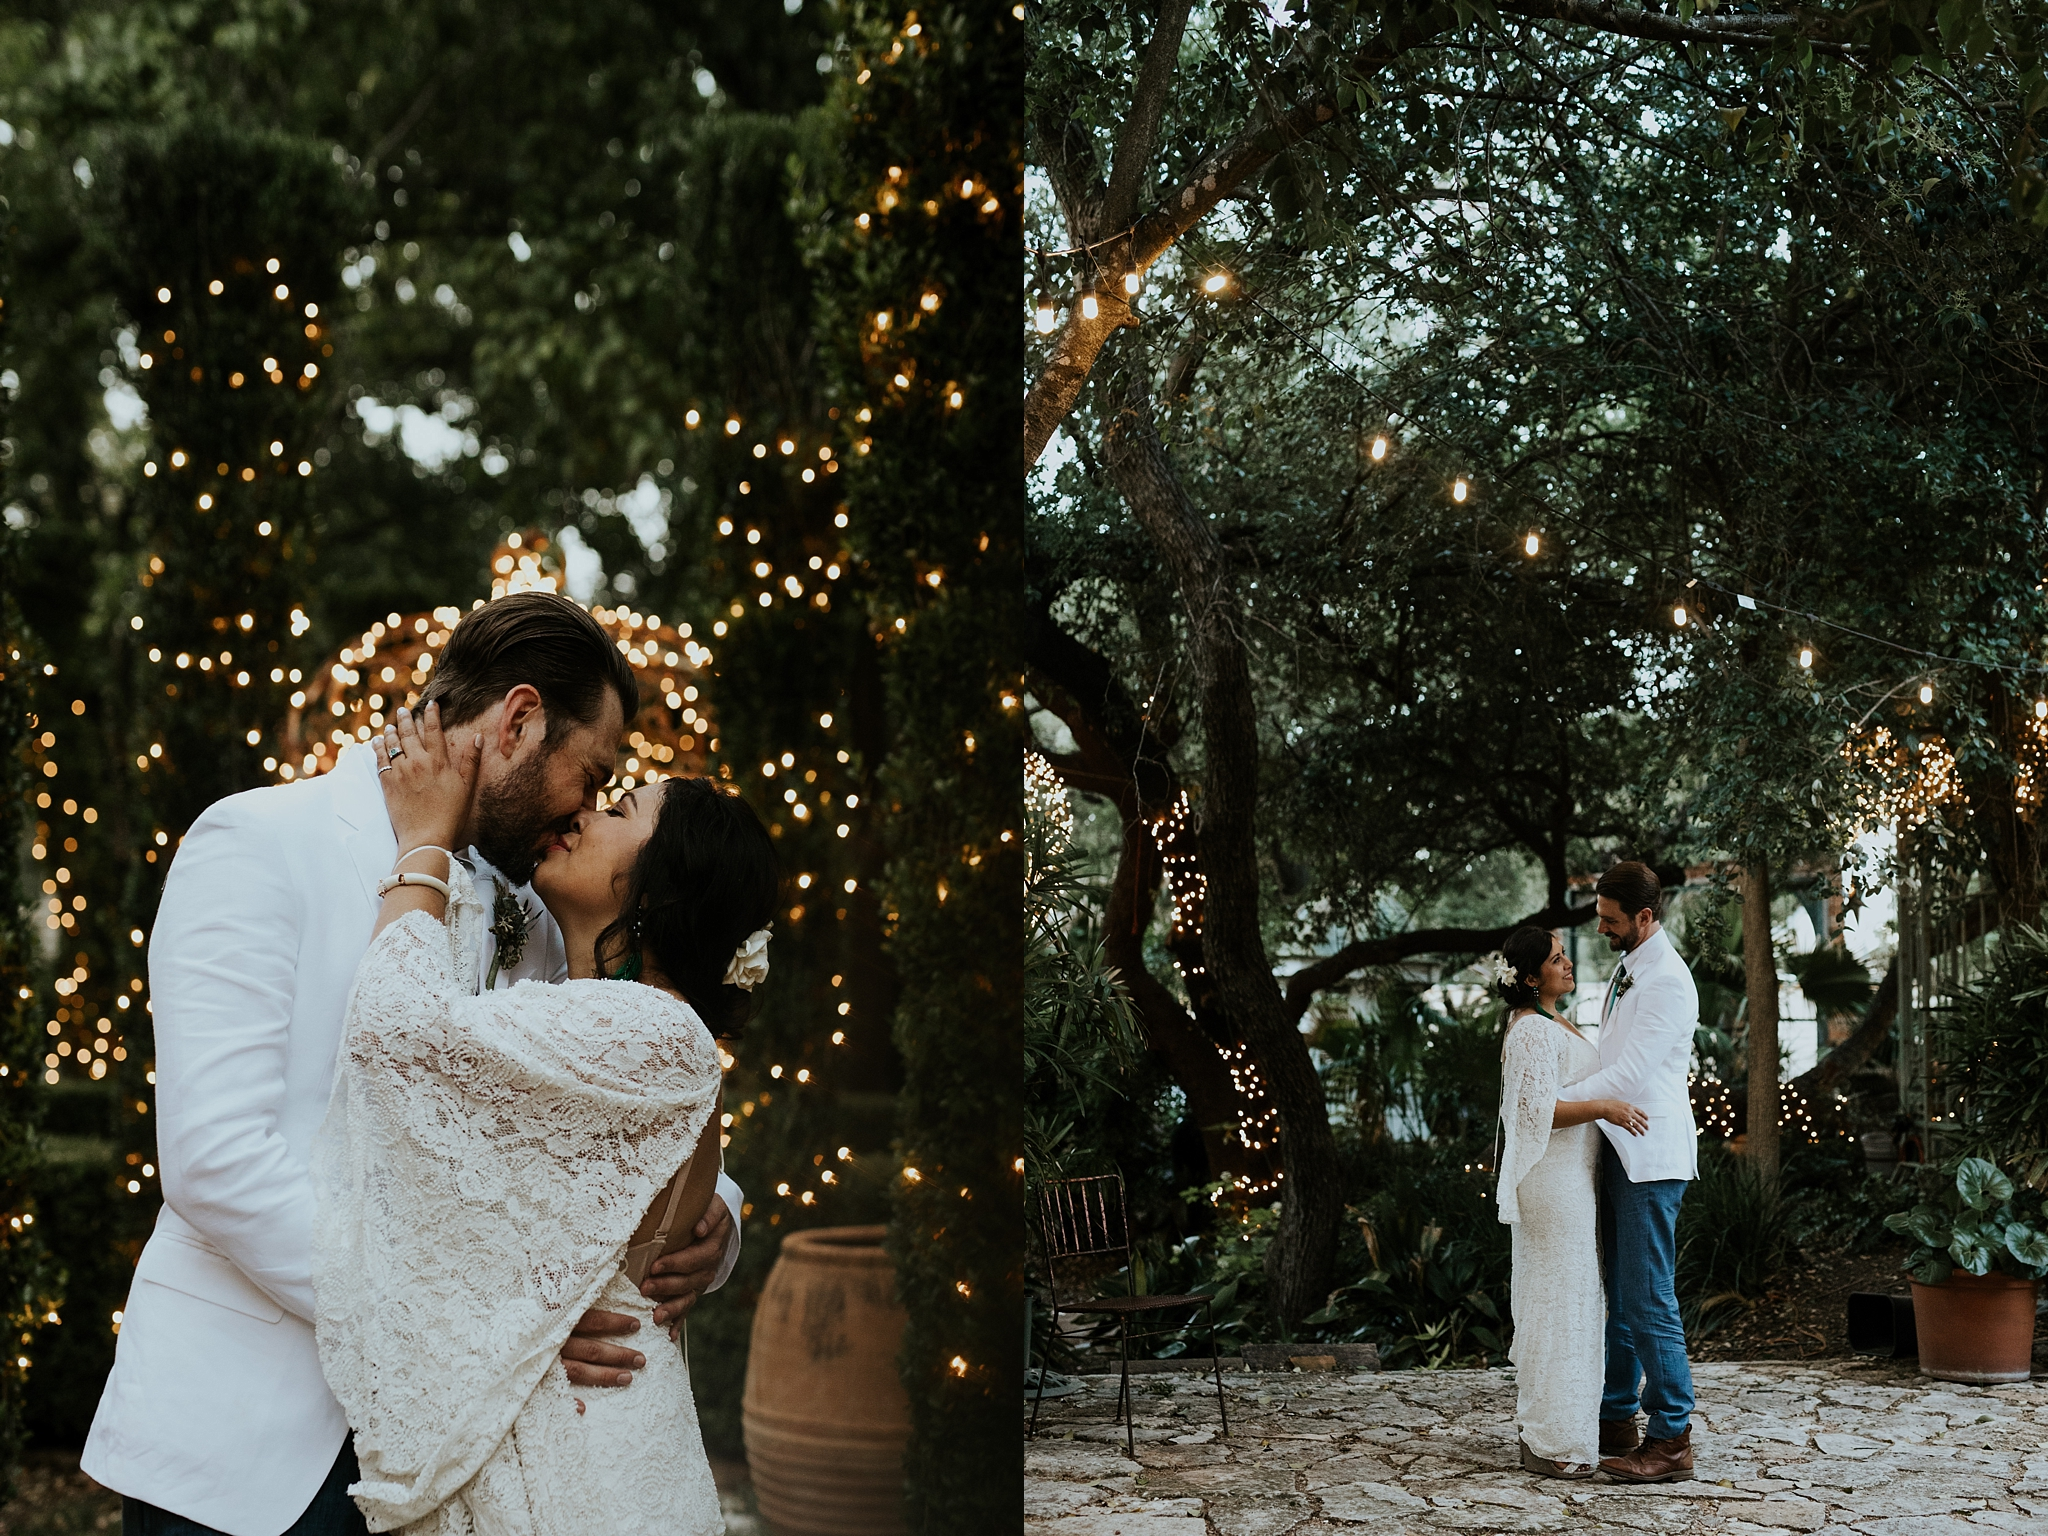 Vibrant Spring Wedding at the enchanting Jennifer's Gardens in Downtown Austin Texas_0040.jpg